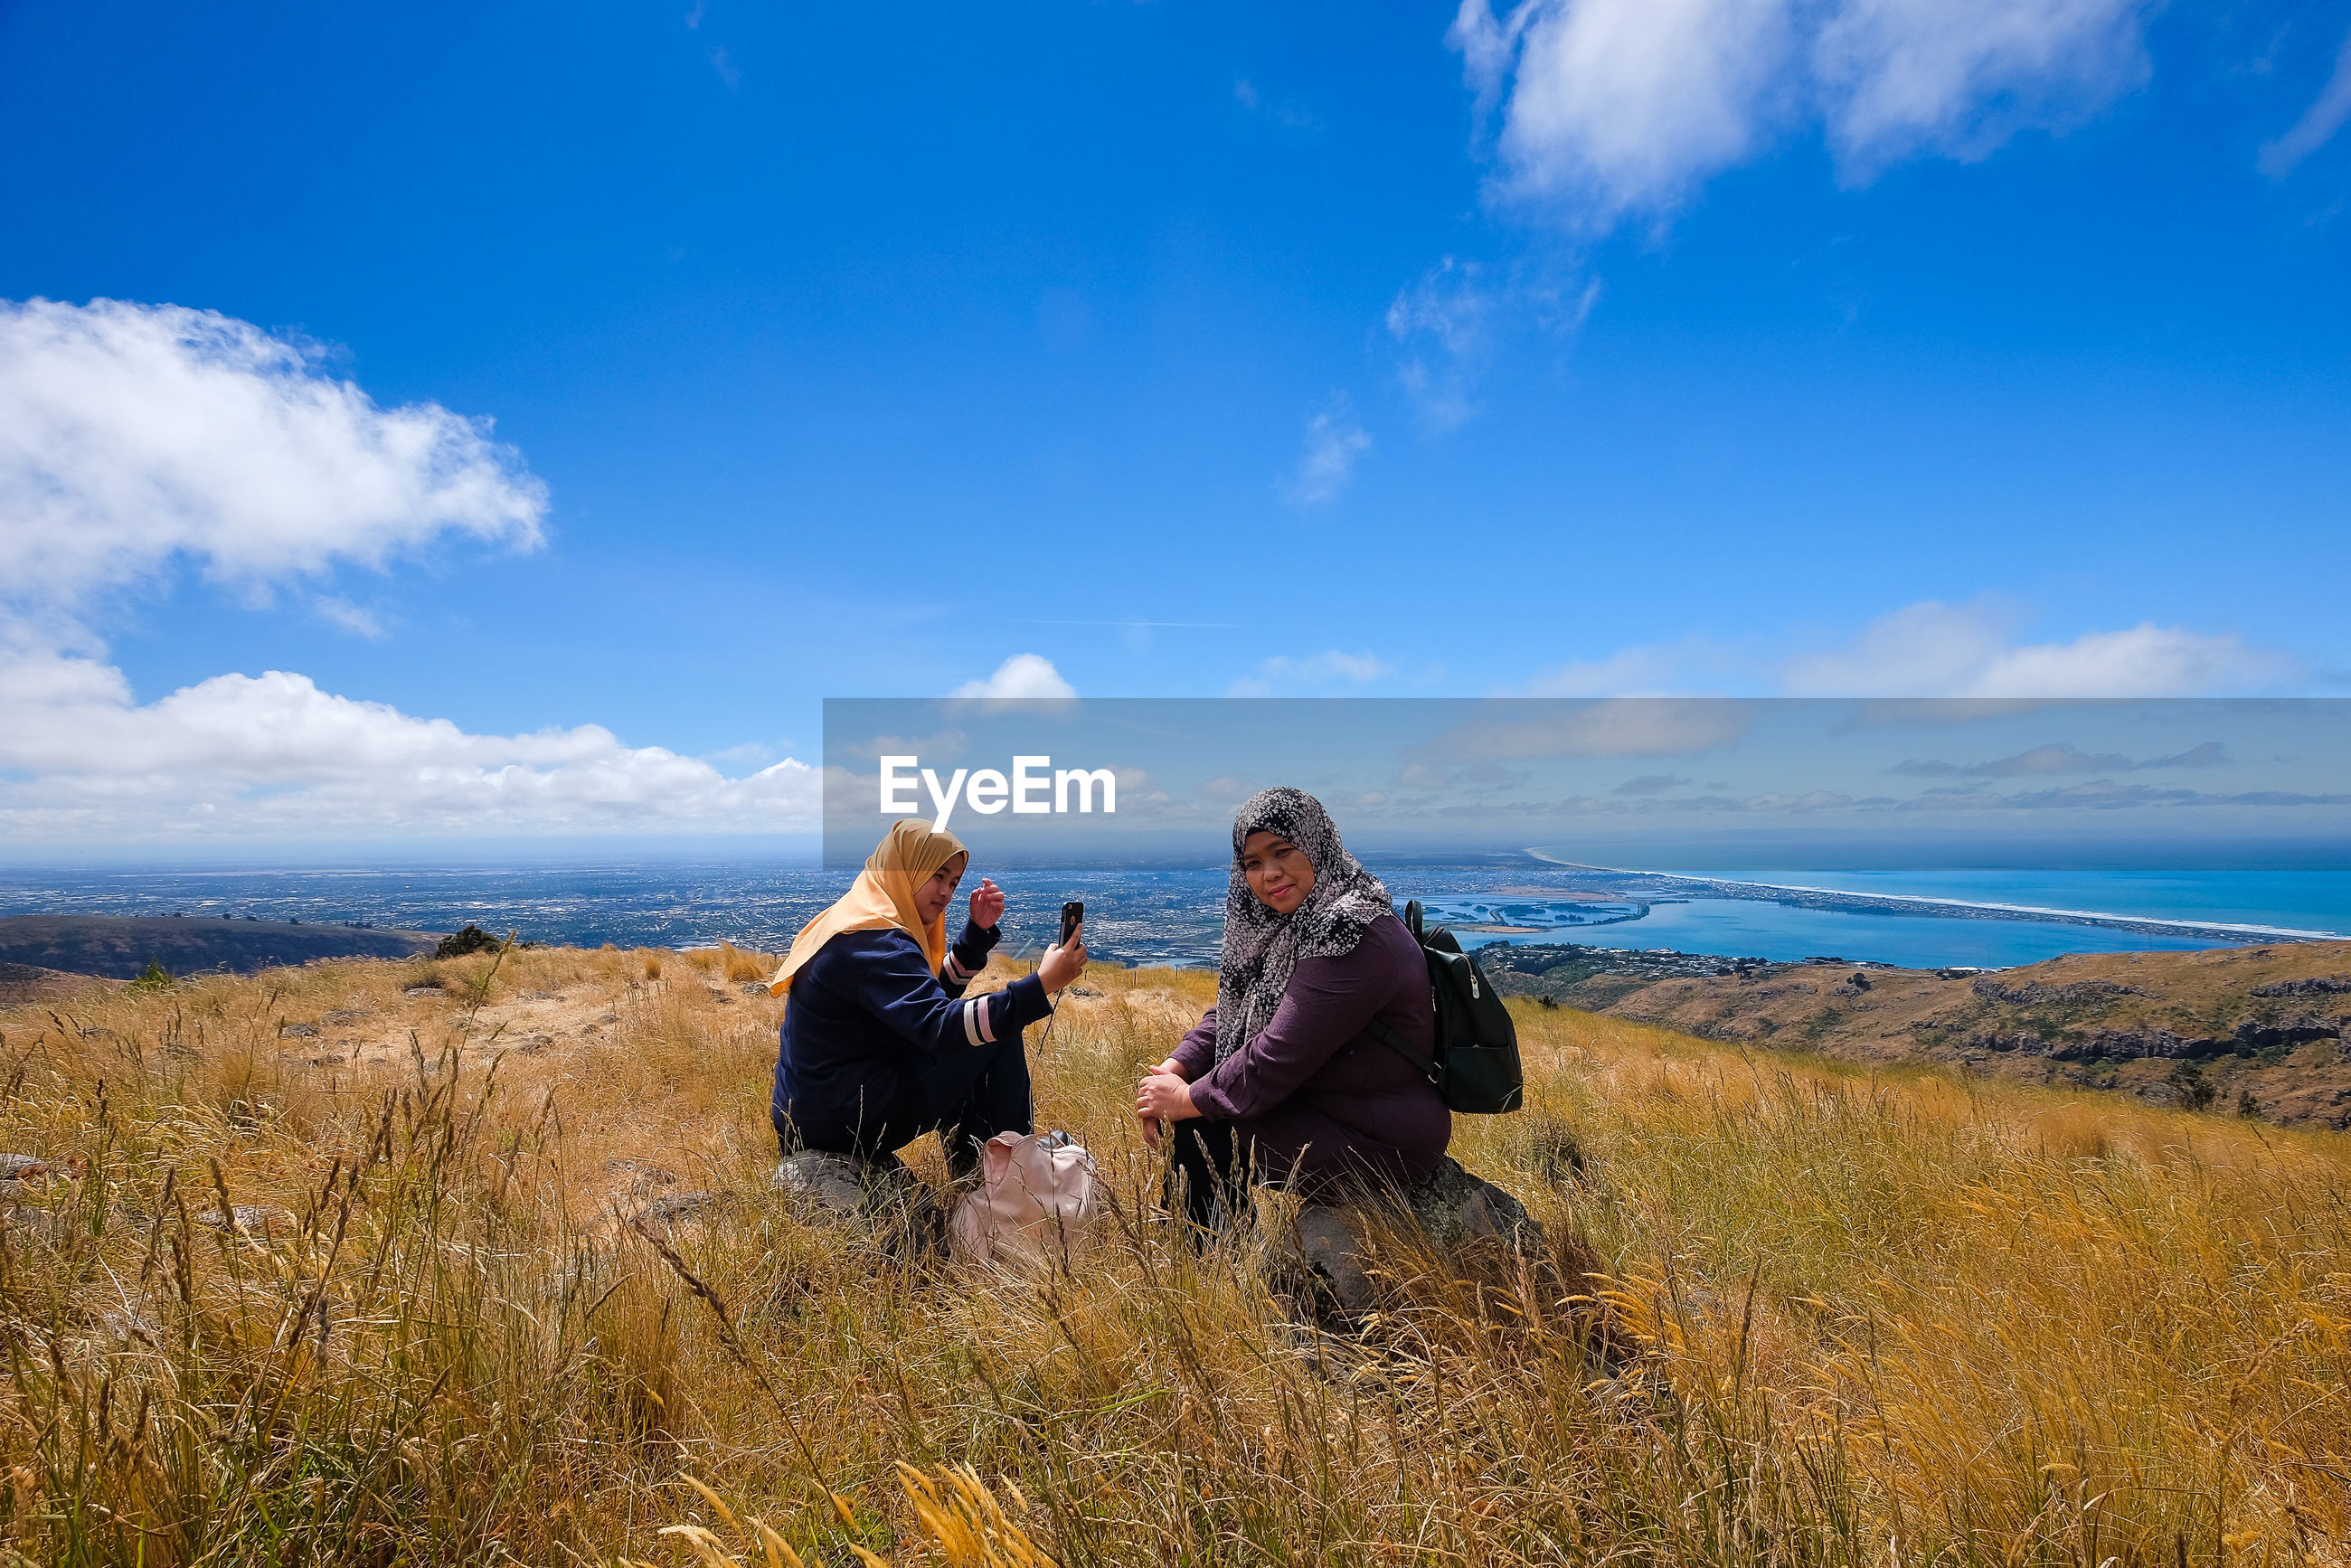 Family sitting on mountain against blue sky during sunny day